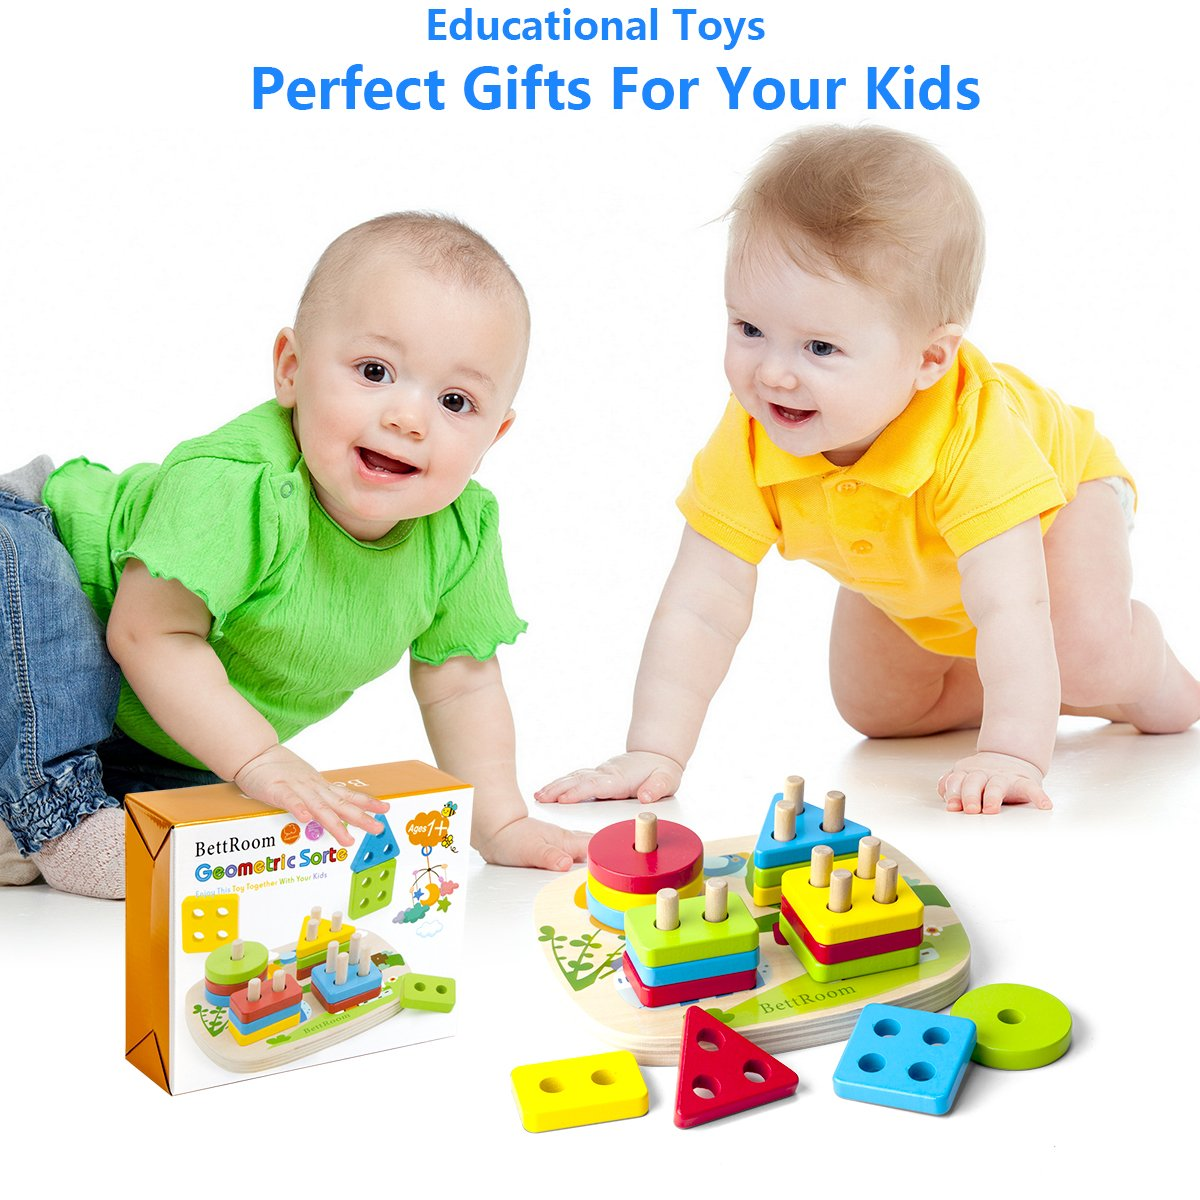 8IN Longquan Bobi Qizhi Toys Co Toddler toys for 1 2 3 4-5 year old boys girls Wooden educational preschool shape color Recognition Geometric Board Blocks Stacking Sort Chunky kids Children Baby NON-TOXIC Bettroom Ltd.